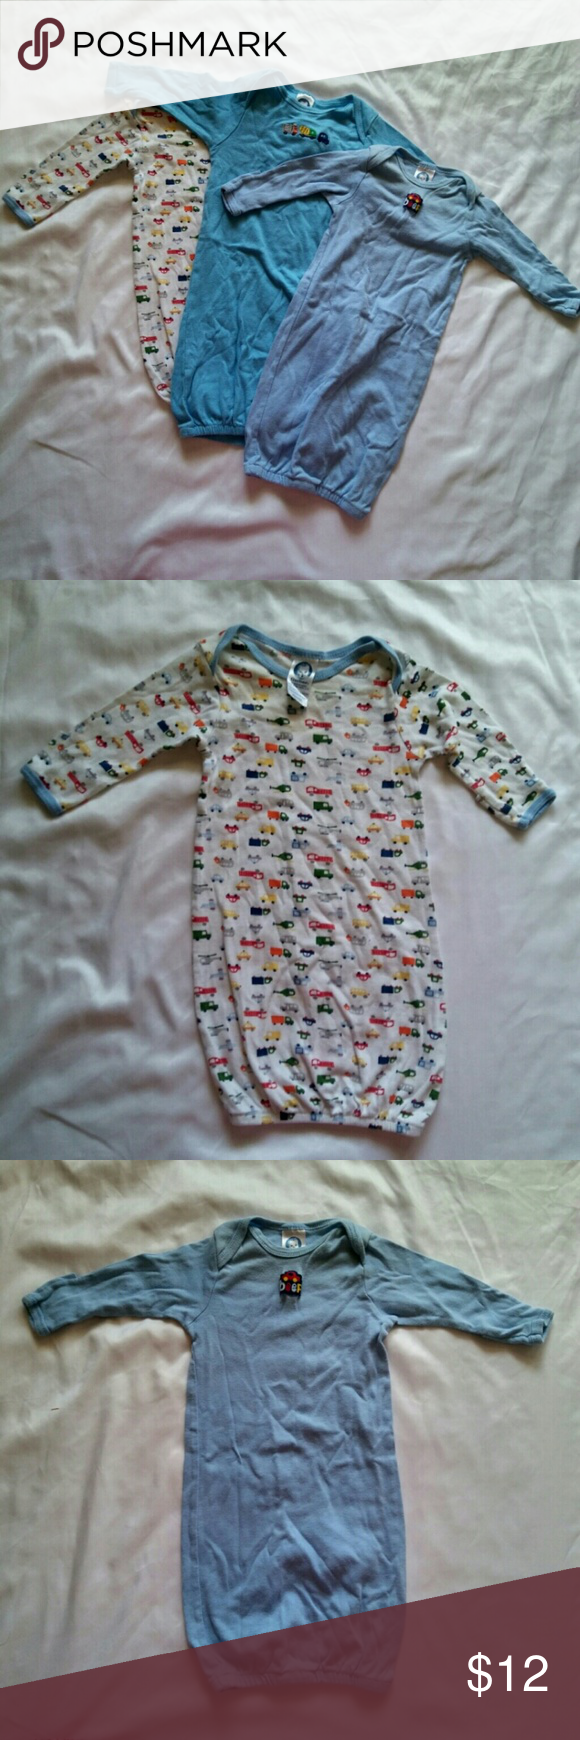 3 Gerber sleeper gowns Super cute lightly used gerber sleeper gowns ...